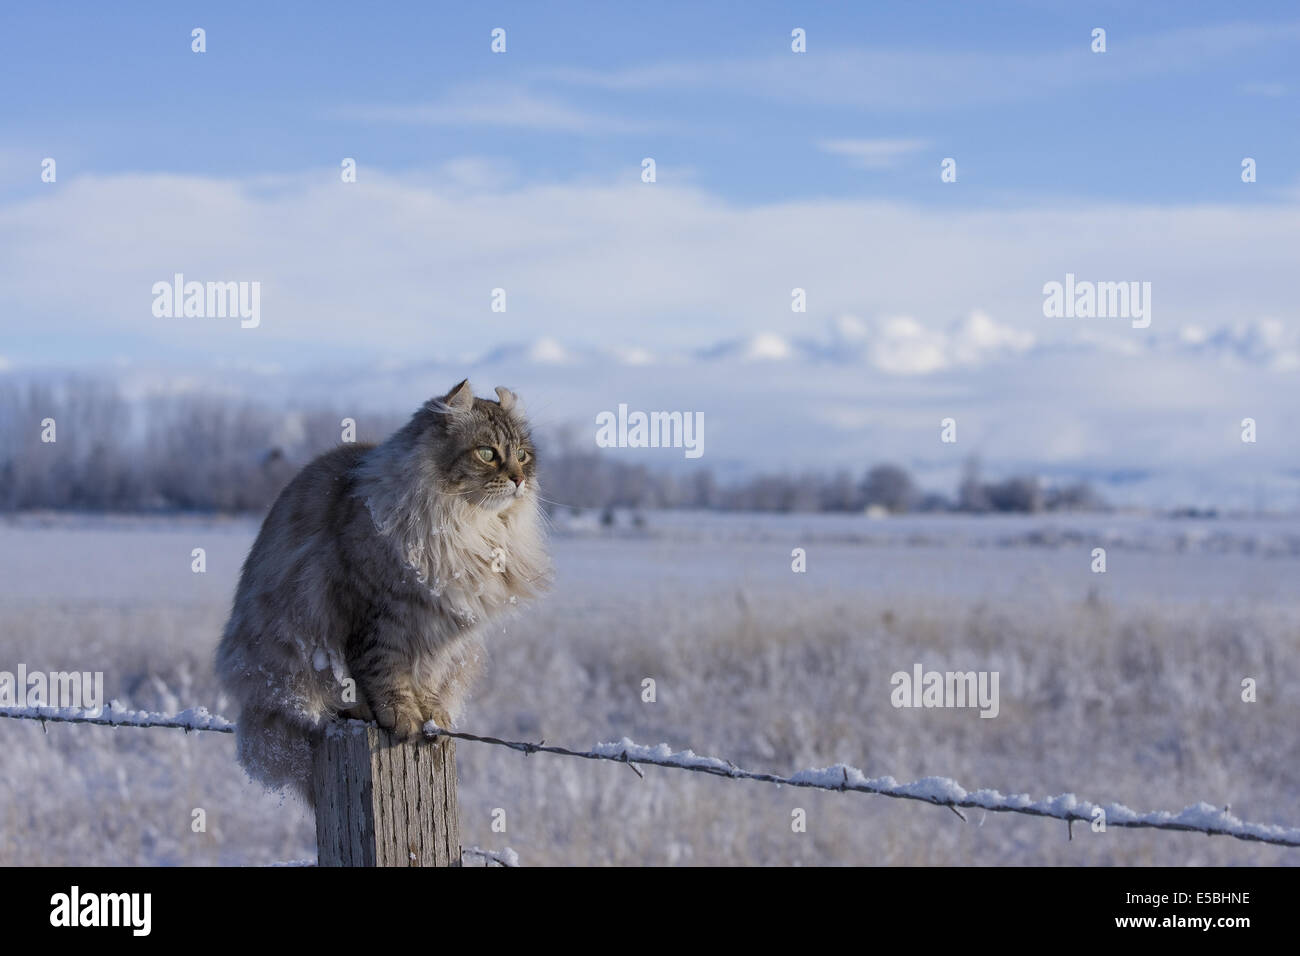 Highland Lynx cat sitting on fence post in the winter with snow and mountains in the background - Stock Image